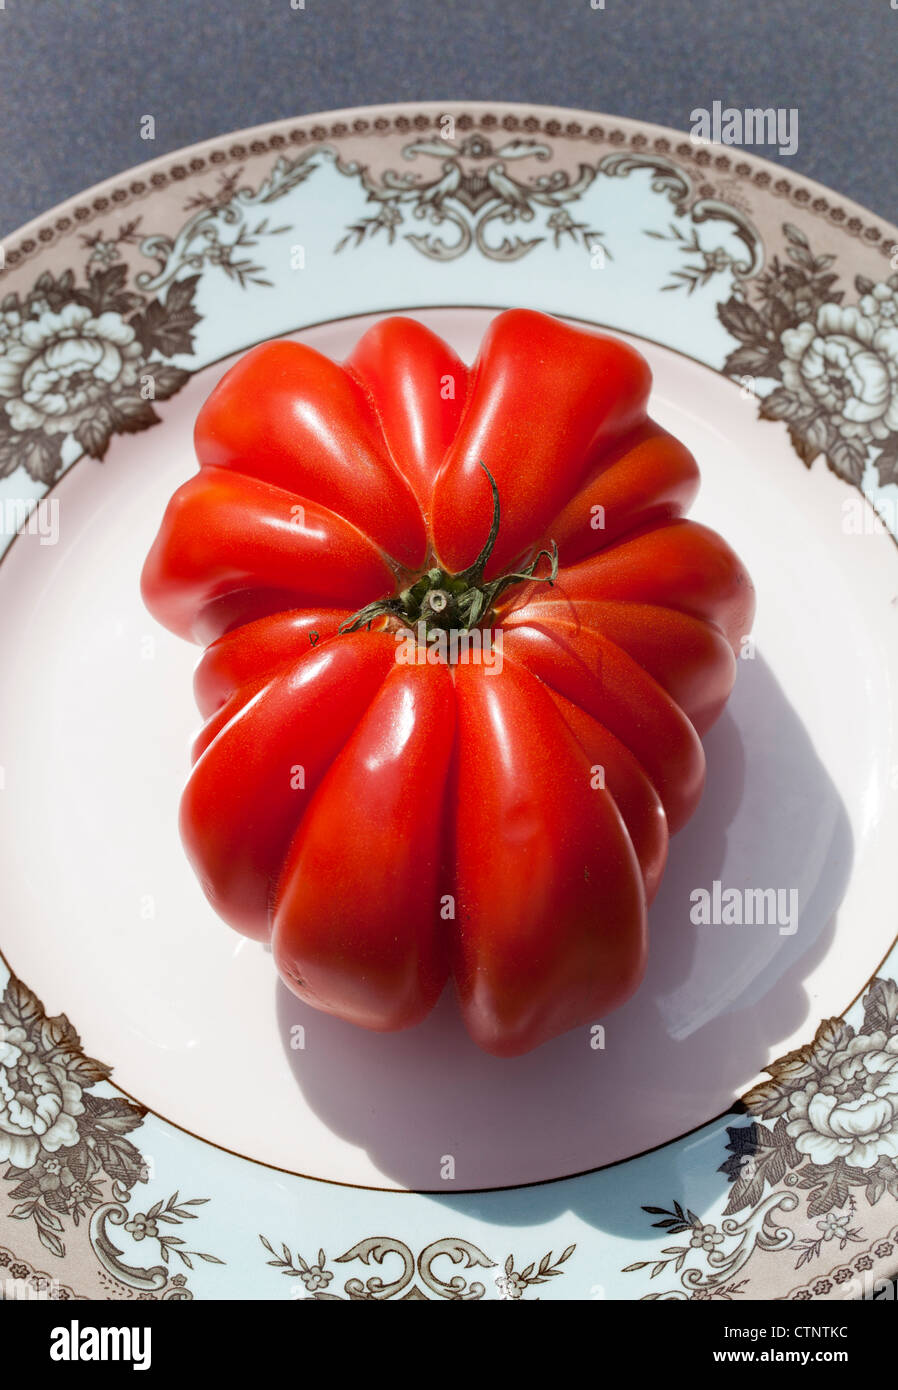 Giant Pink Beef Tomato (Zapotec Pleated) - Stock Image